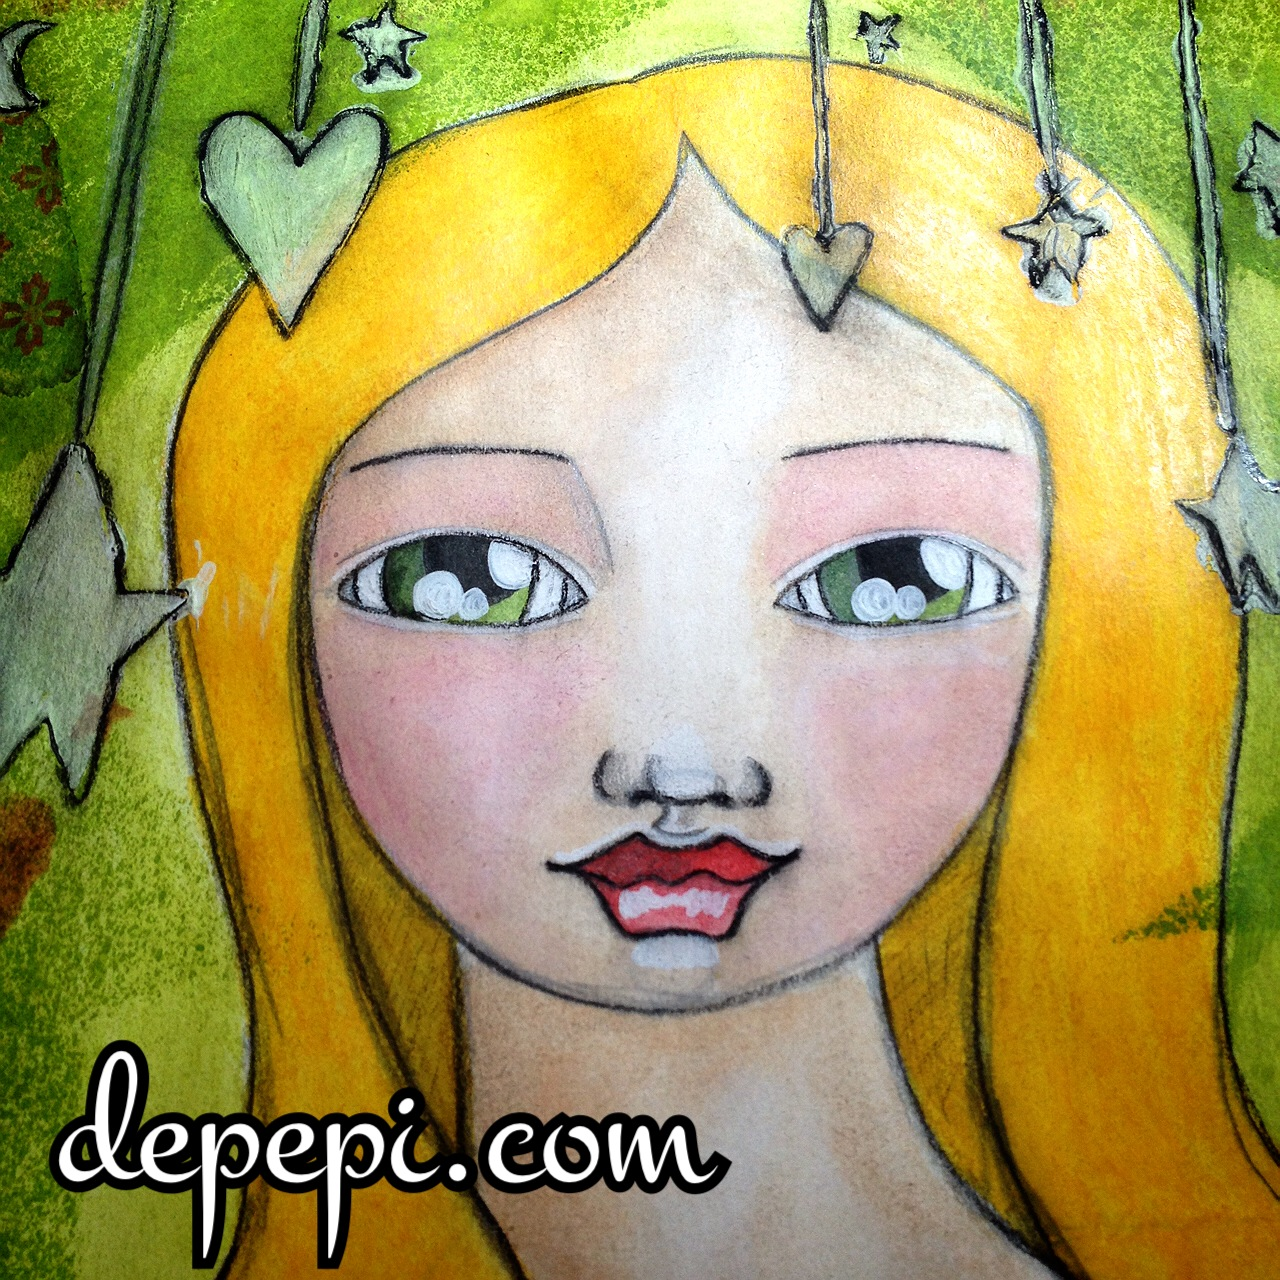 mixed media love, mixed media art, mixed media, depepi, depepi.com, whimsy, whimsical art, neocolor II, watersoluble, journaling, kawaii, cute